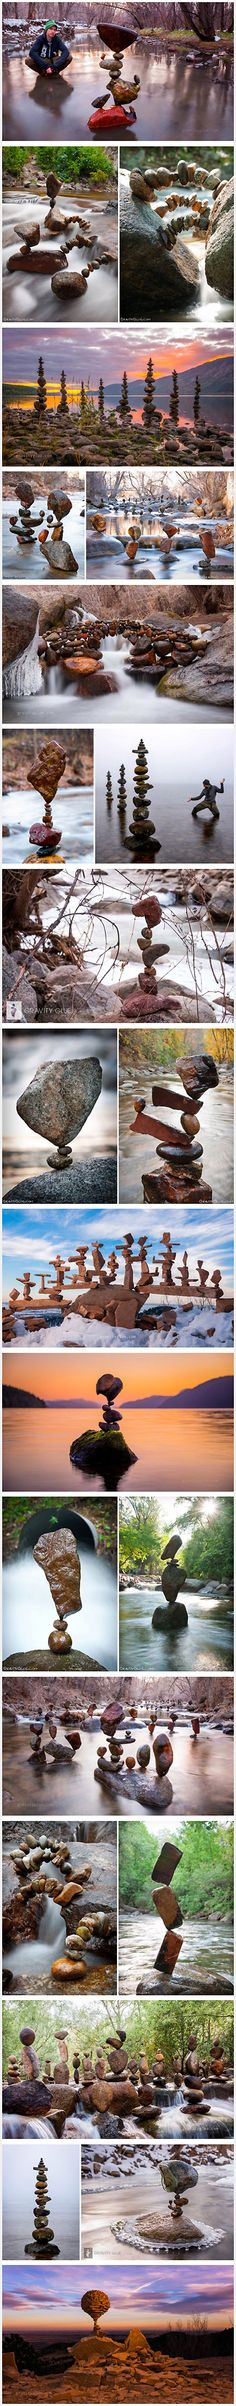 We're having a hard time deciding whether Michael Grab is an artist or a magician, because he creates stunning structure from finely balanced rocks that seem to defy the law of physics. These seemingly impossible structures require intense concentration and meditative focus.